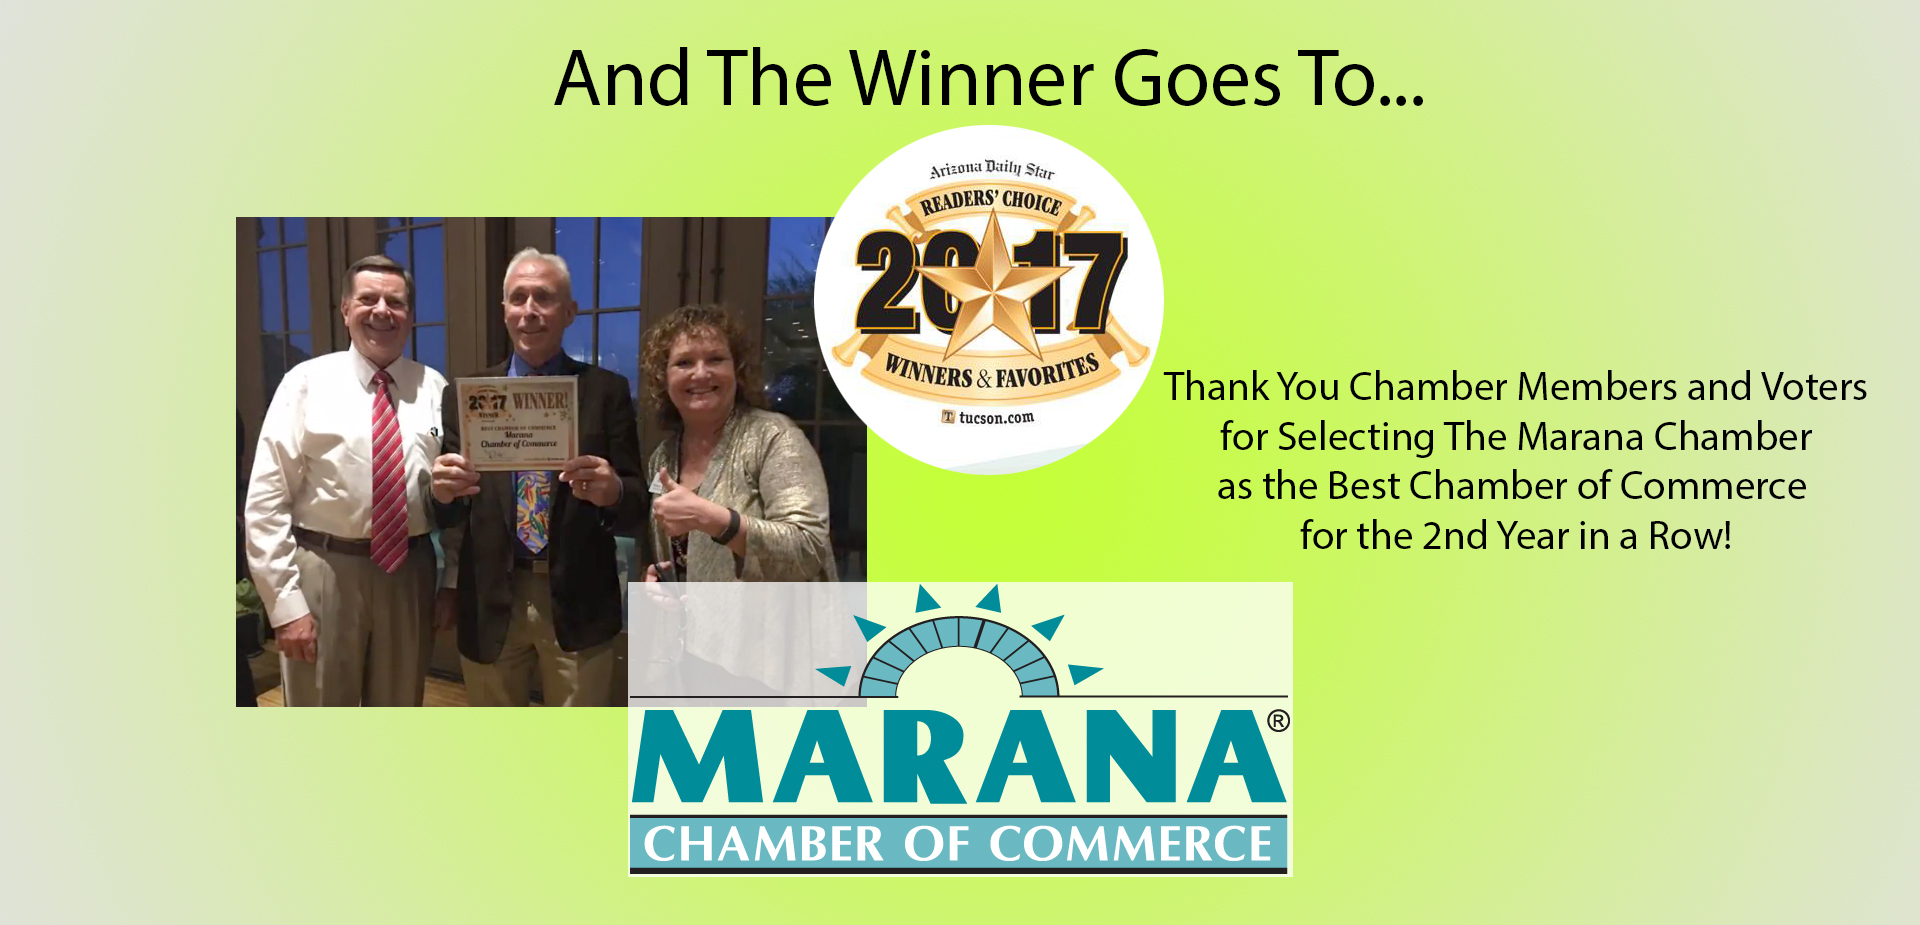 and the winner goes to Marana Chamber of Commerce for best Chamber